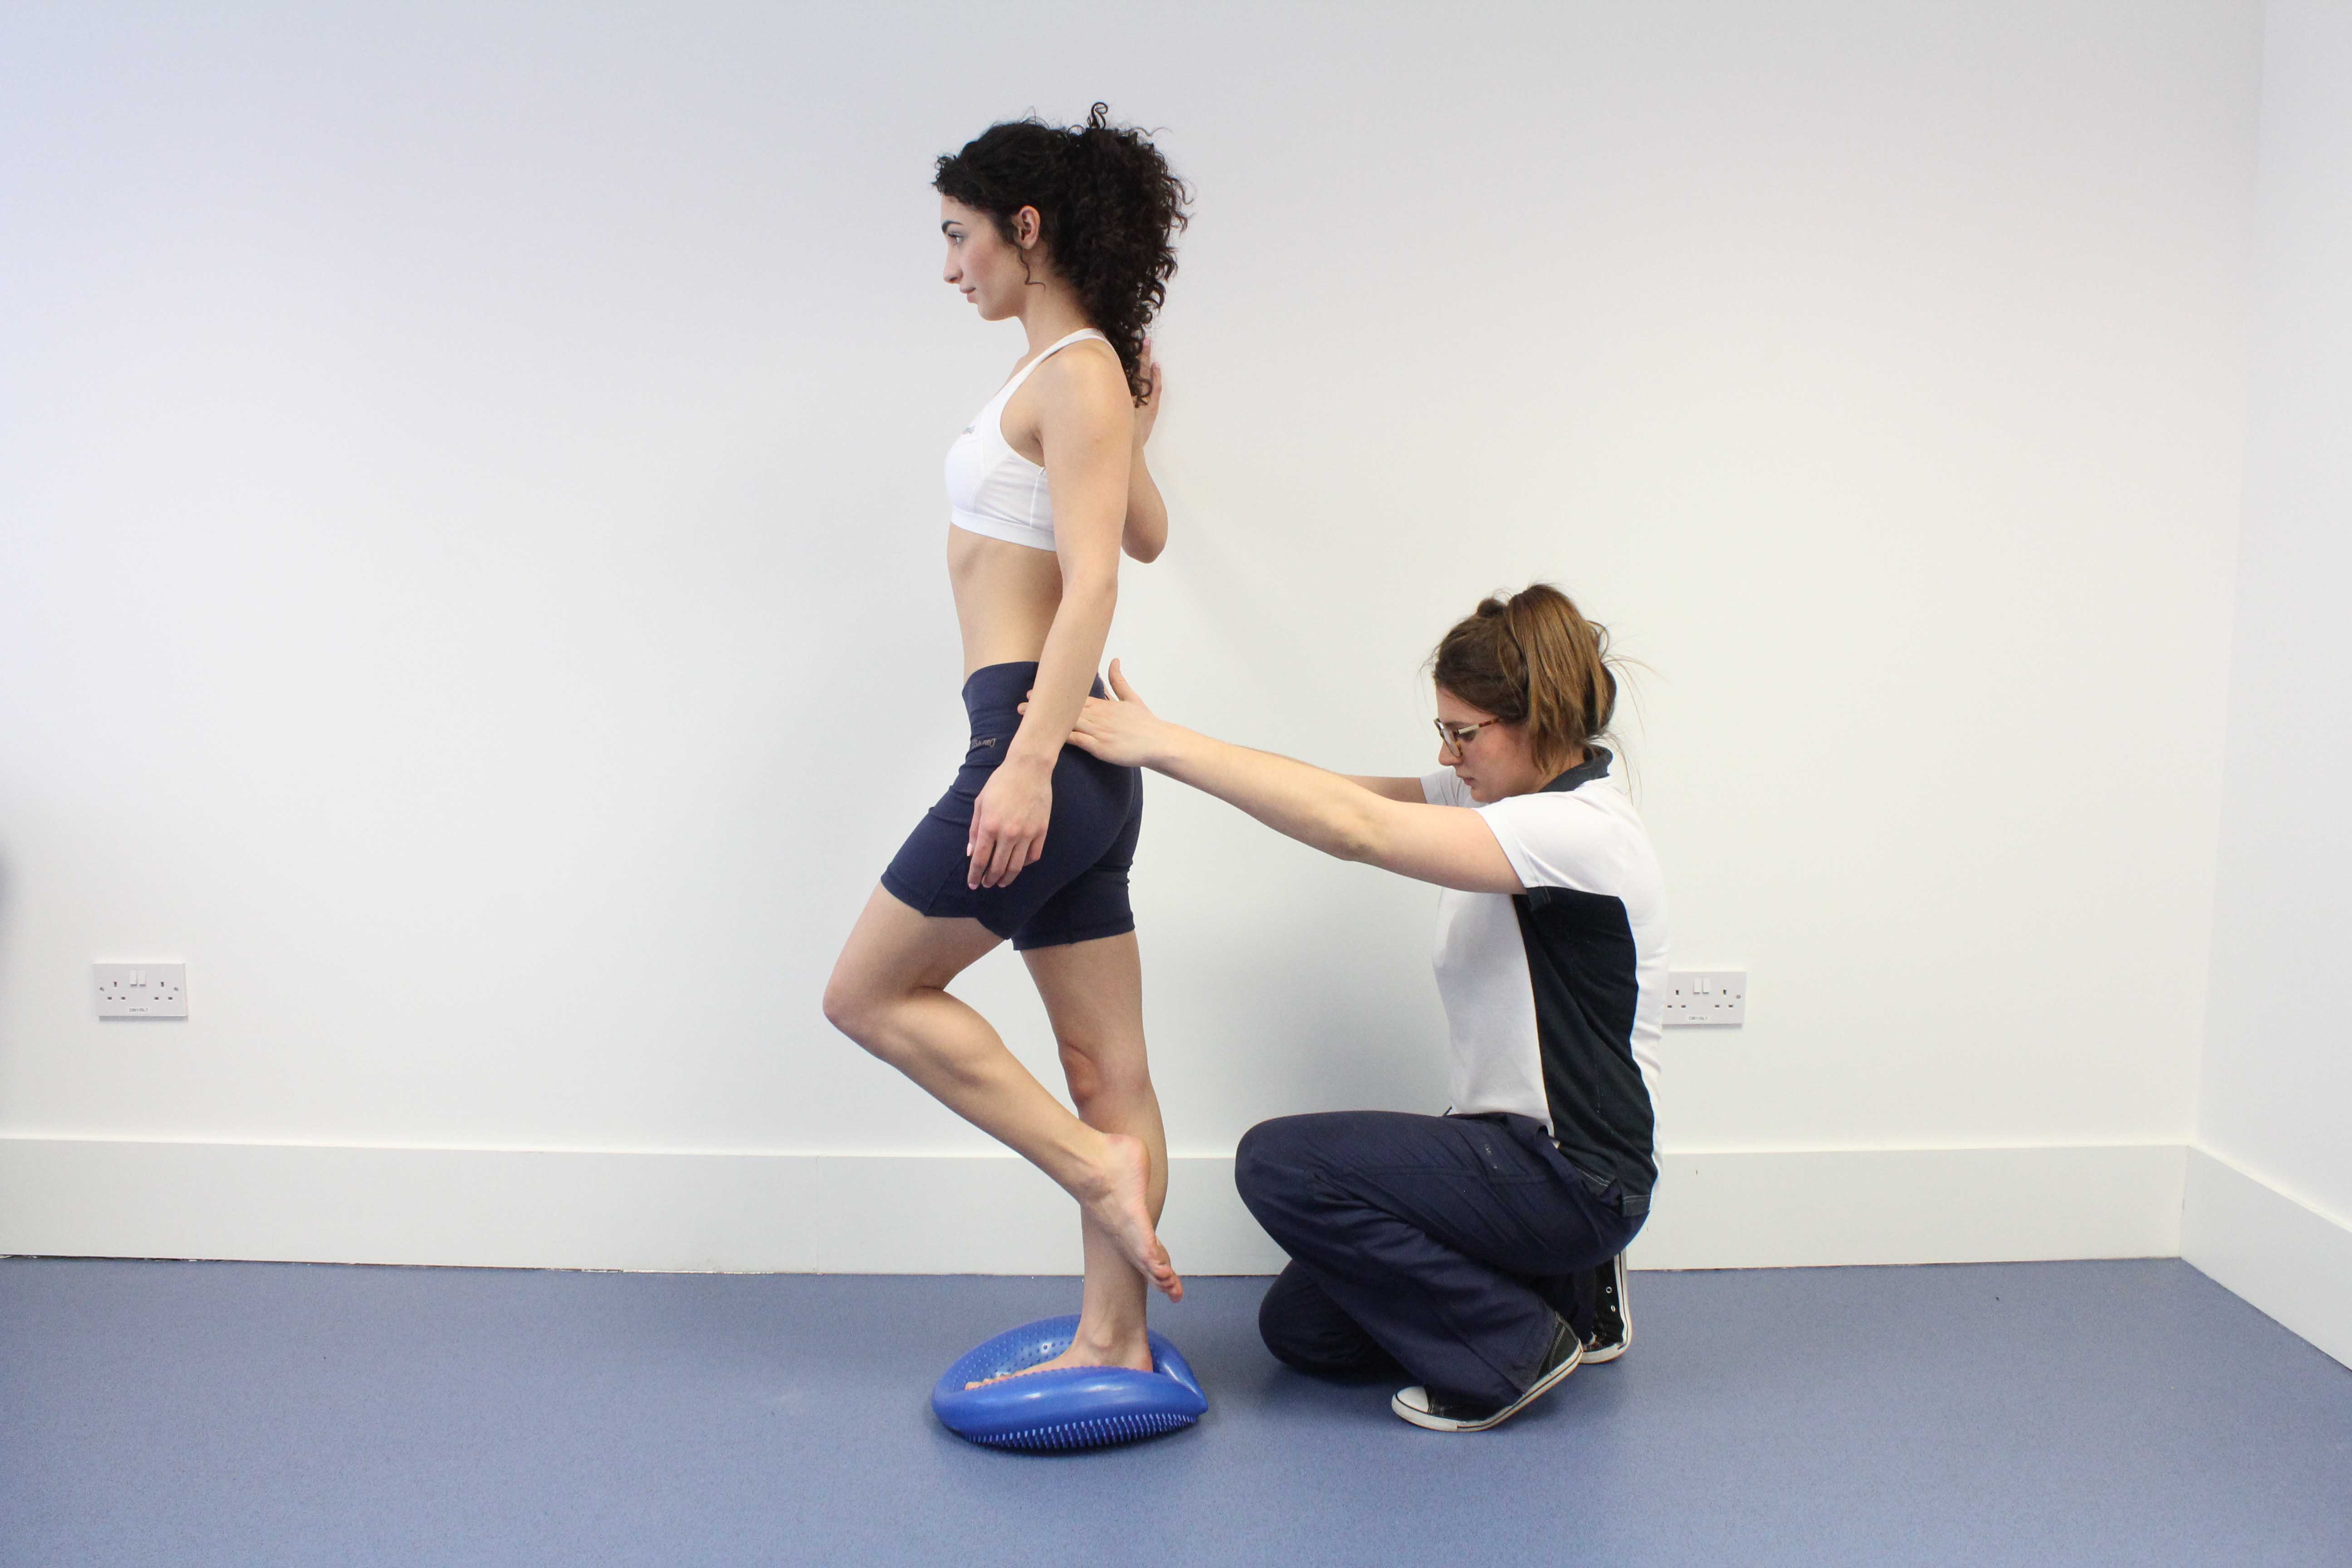 Stability training for the foot and ankle